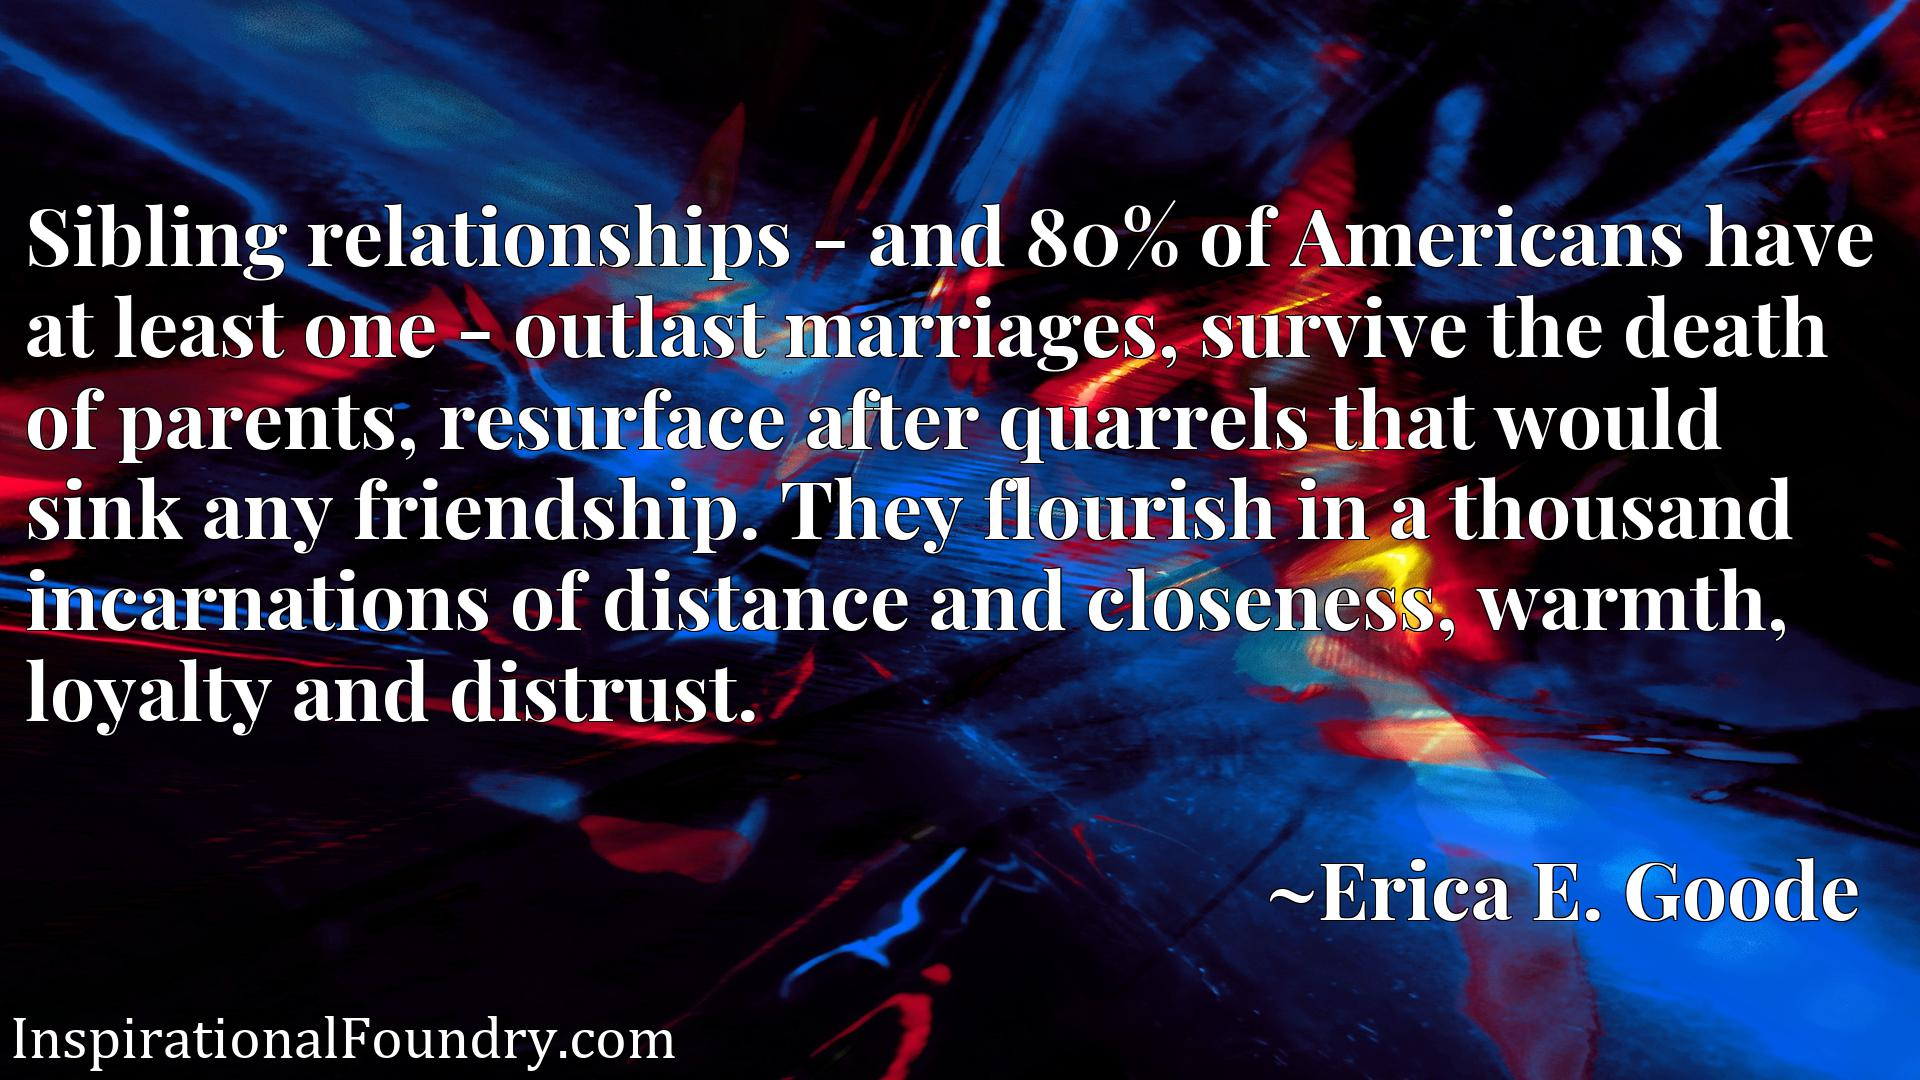 Sibling relationships - and 80% of Americans have at least one - outlast marriages, survive the death of parents, resurface after quarrels that would sink any friendship. They flourish in a thousand incarnations of distance and closeness, warmth, loyalty and distrust.